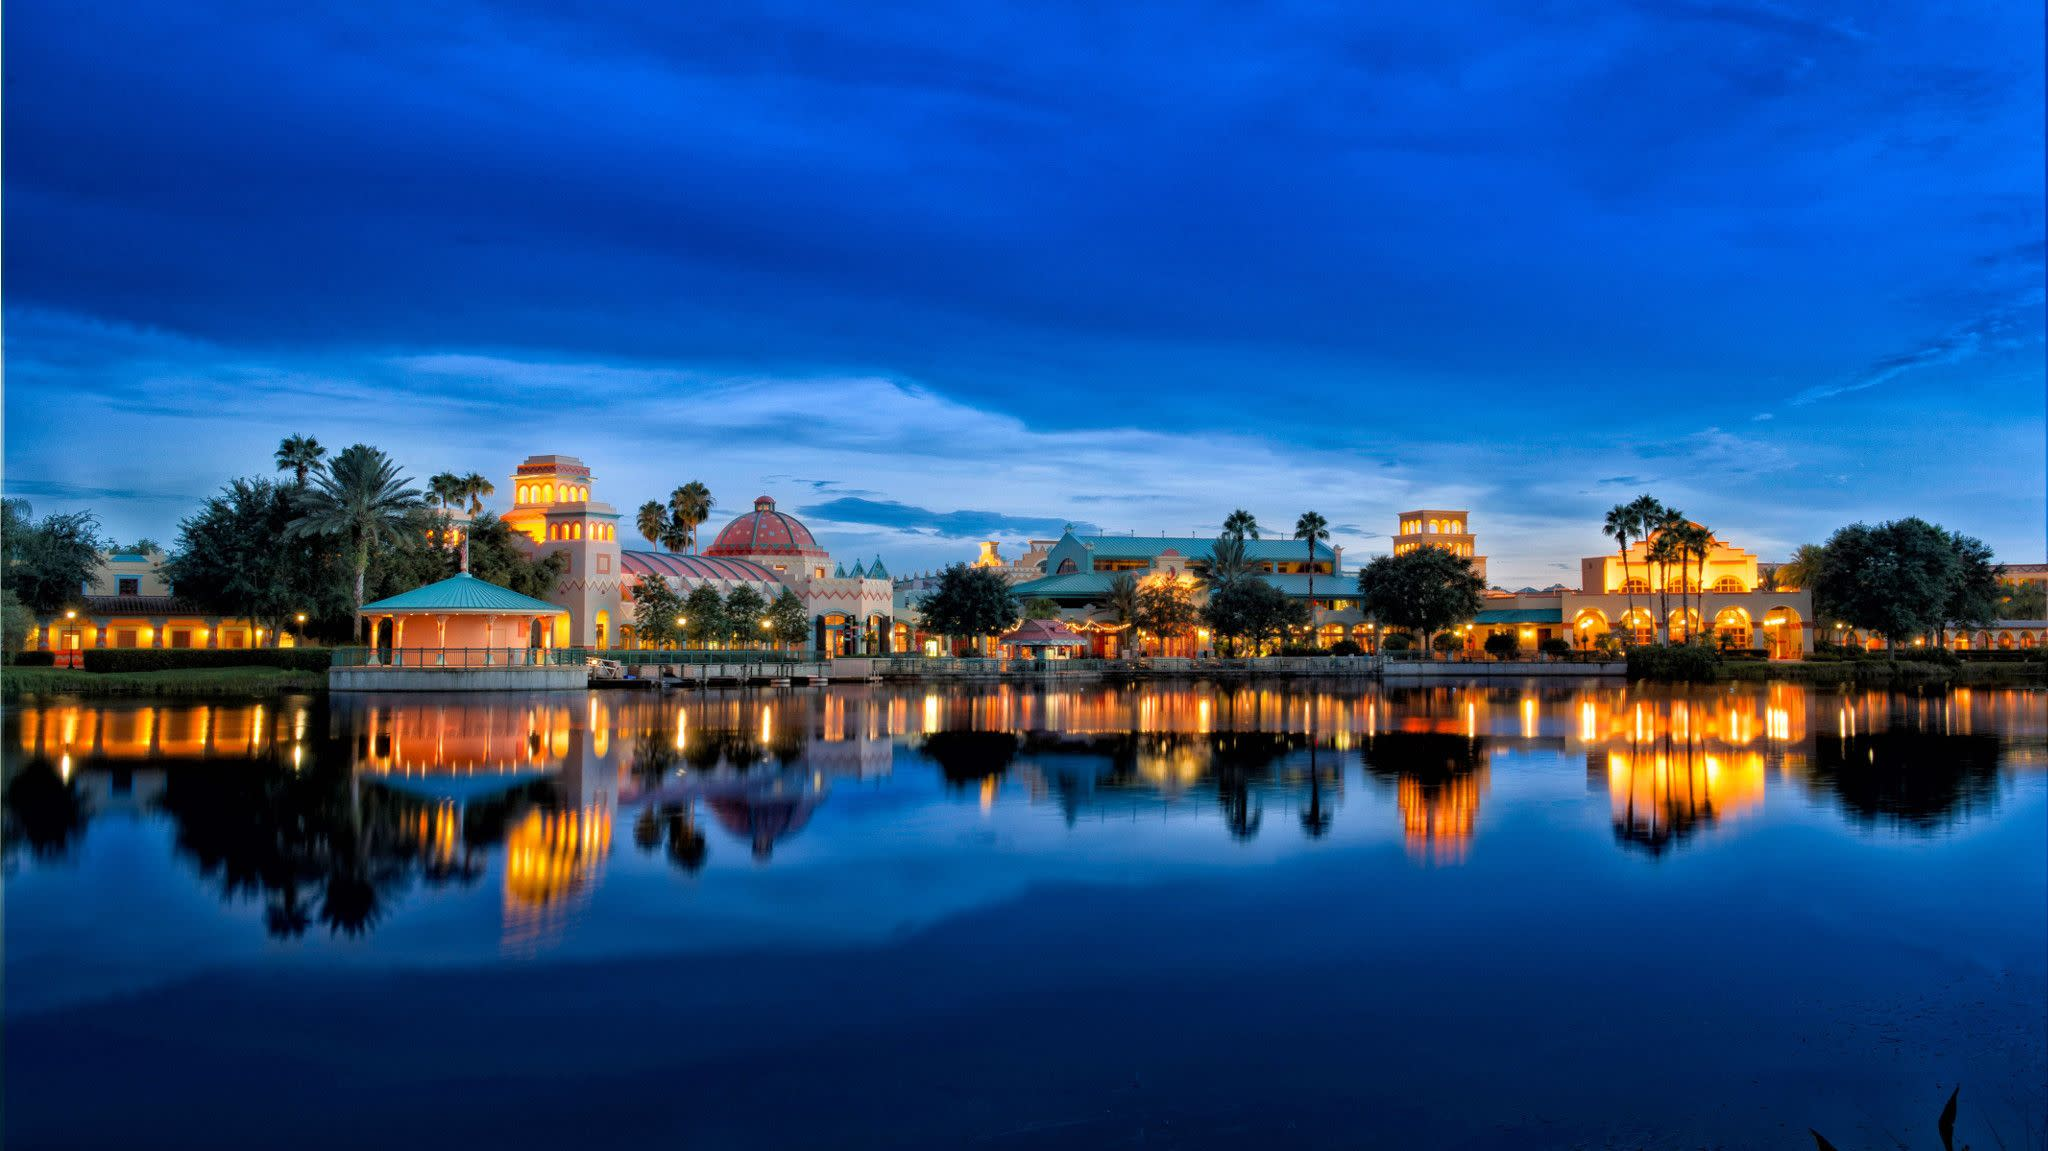 Disney's Coronado Springs Resort at Walt Disney World Resort in Orlando